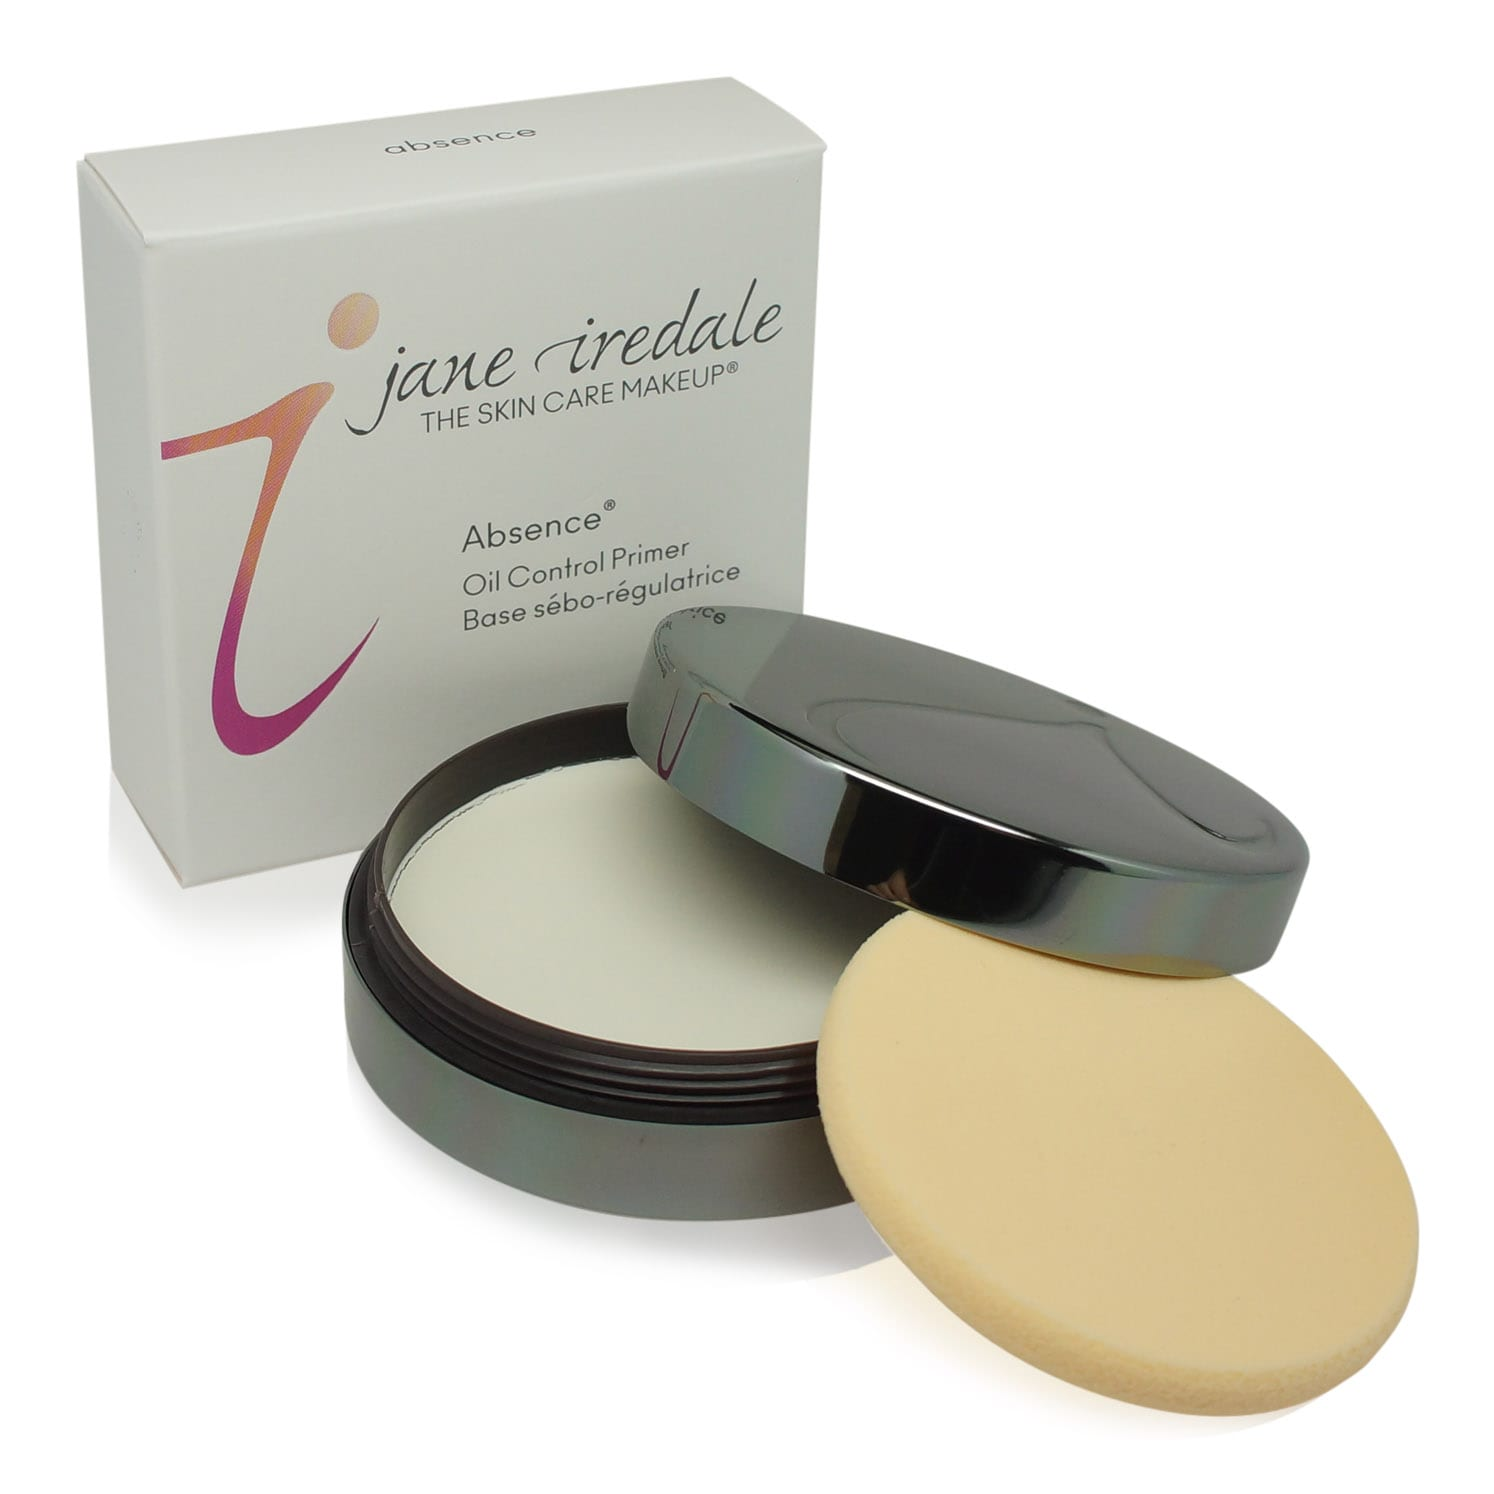 jane iredale Absence Oil Control Primer product front view